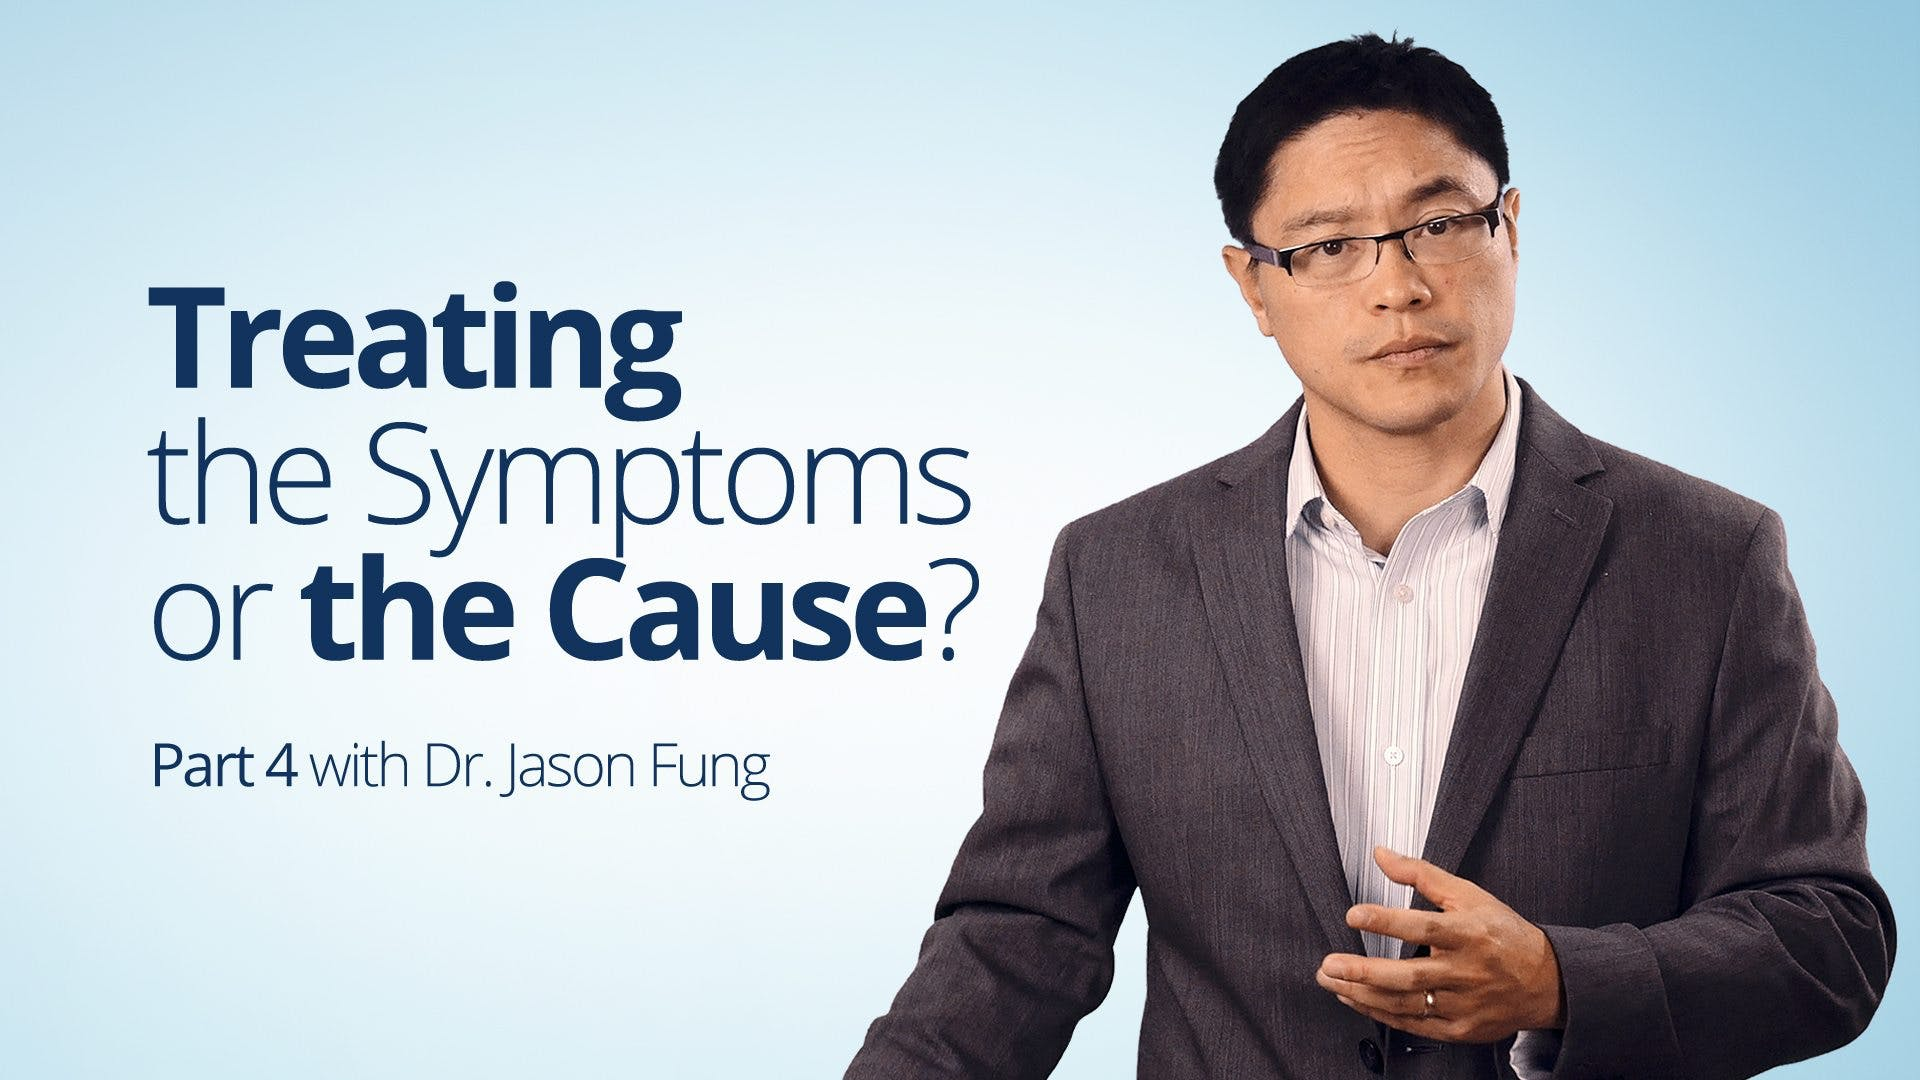 Treating the Symptoms or the Cause?